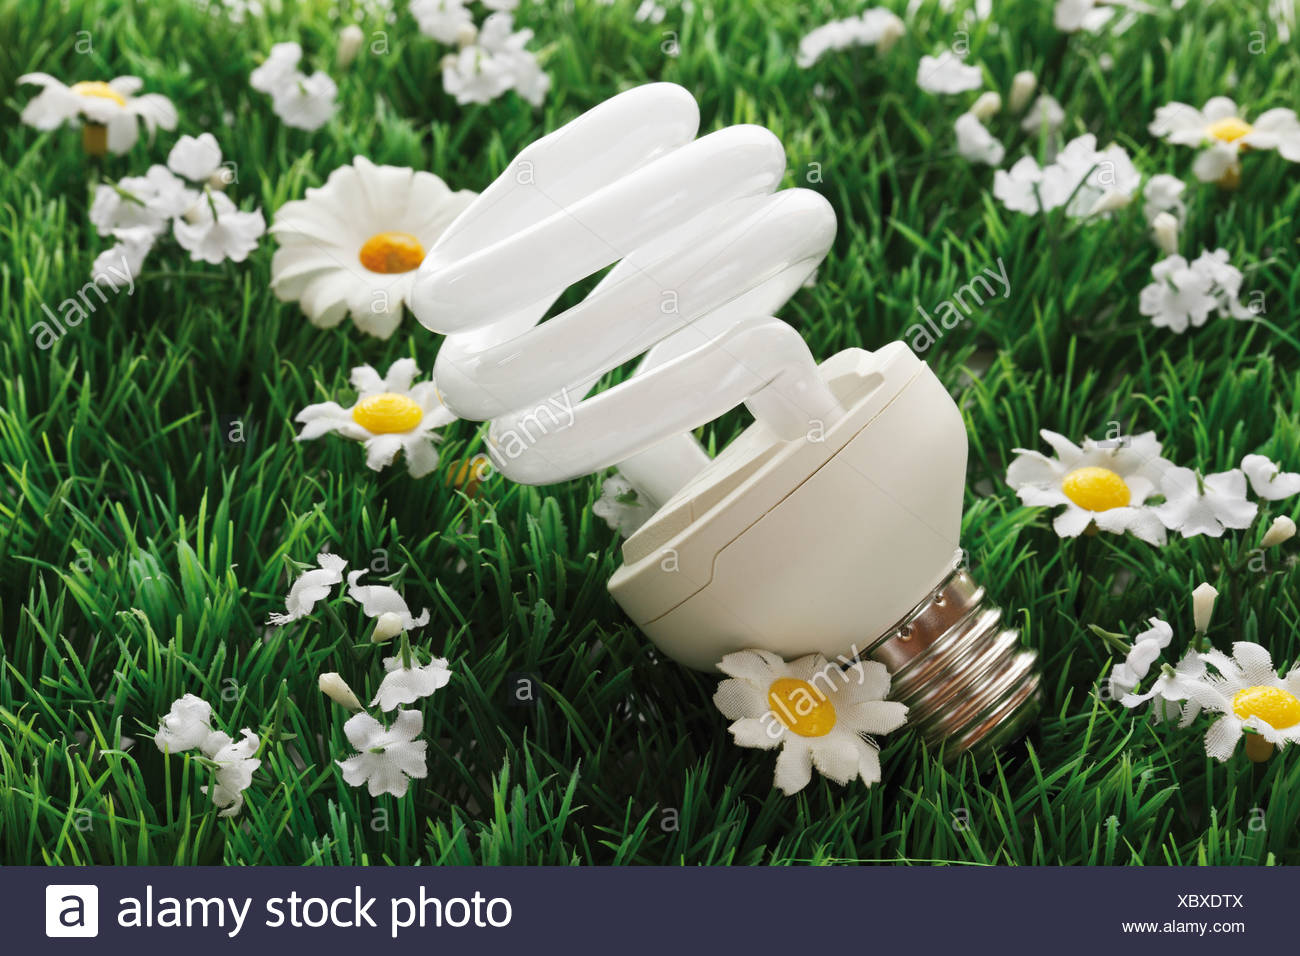 Energy saving lightbulb on synthetic turf, close-up - Stock Image